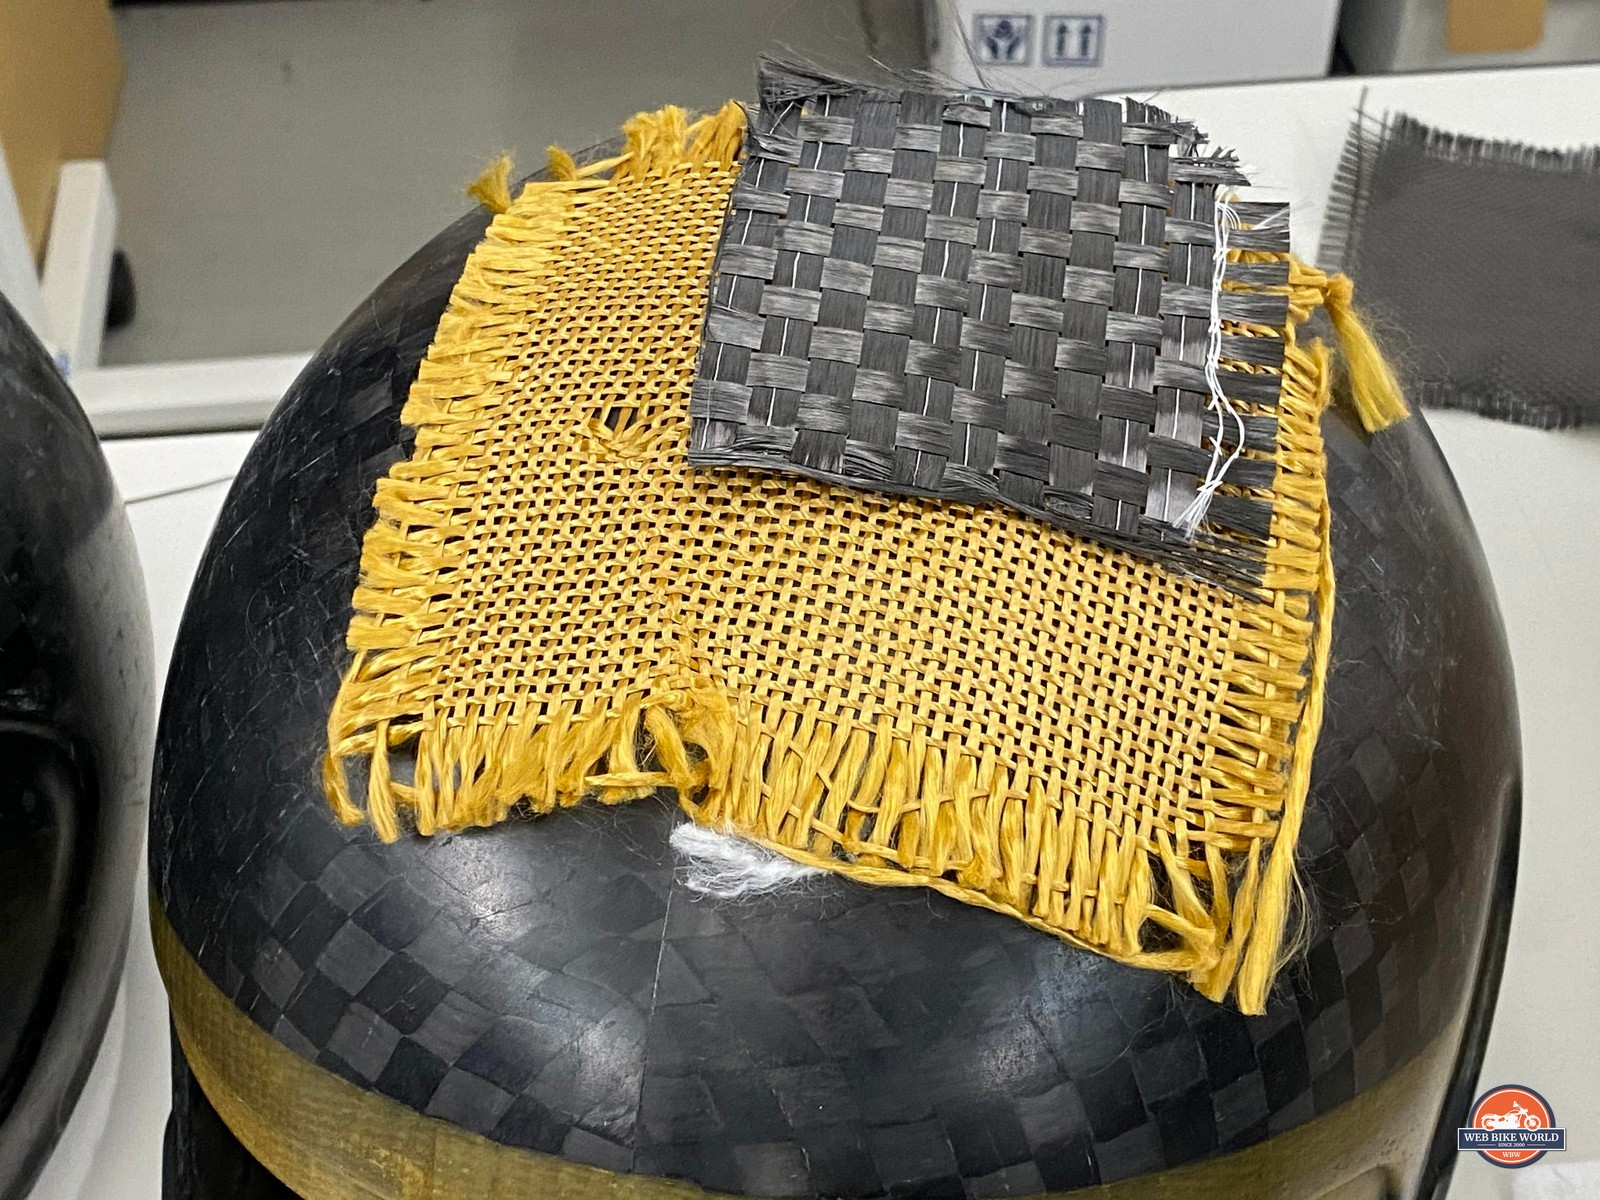 Zylon is the yellow woven material sitting on top of the carbon fiber helmet in the photo .